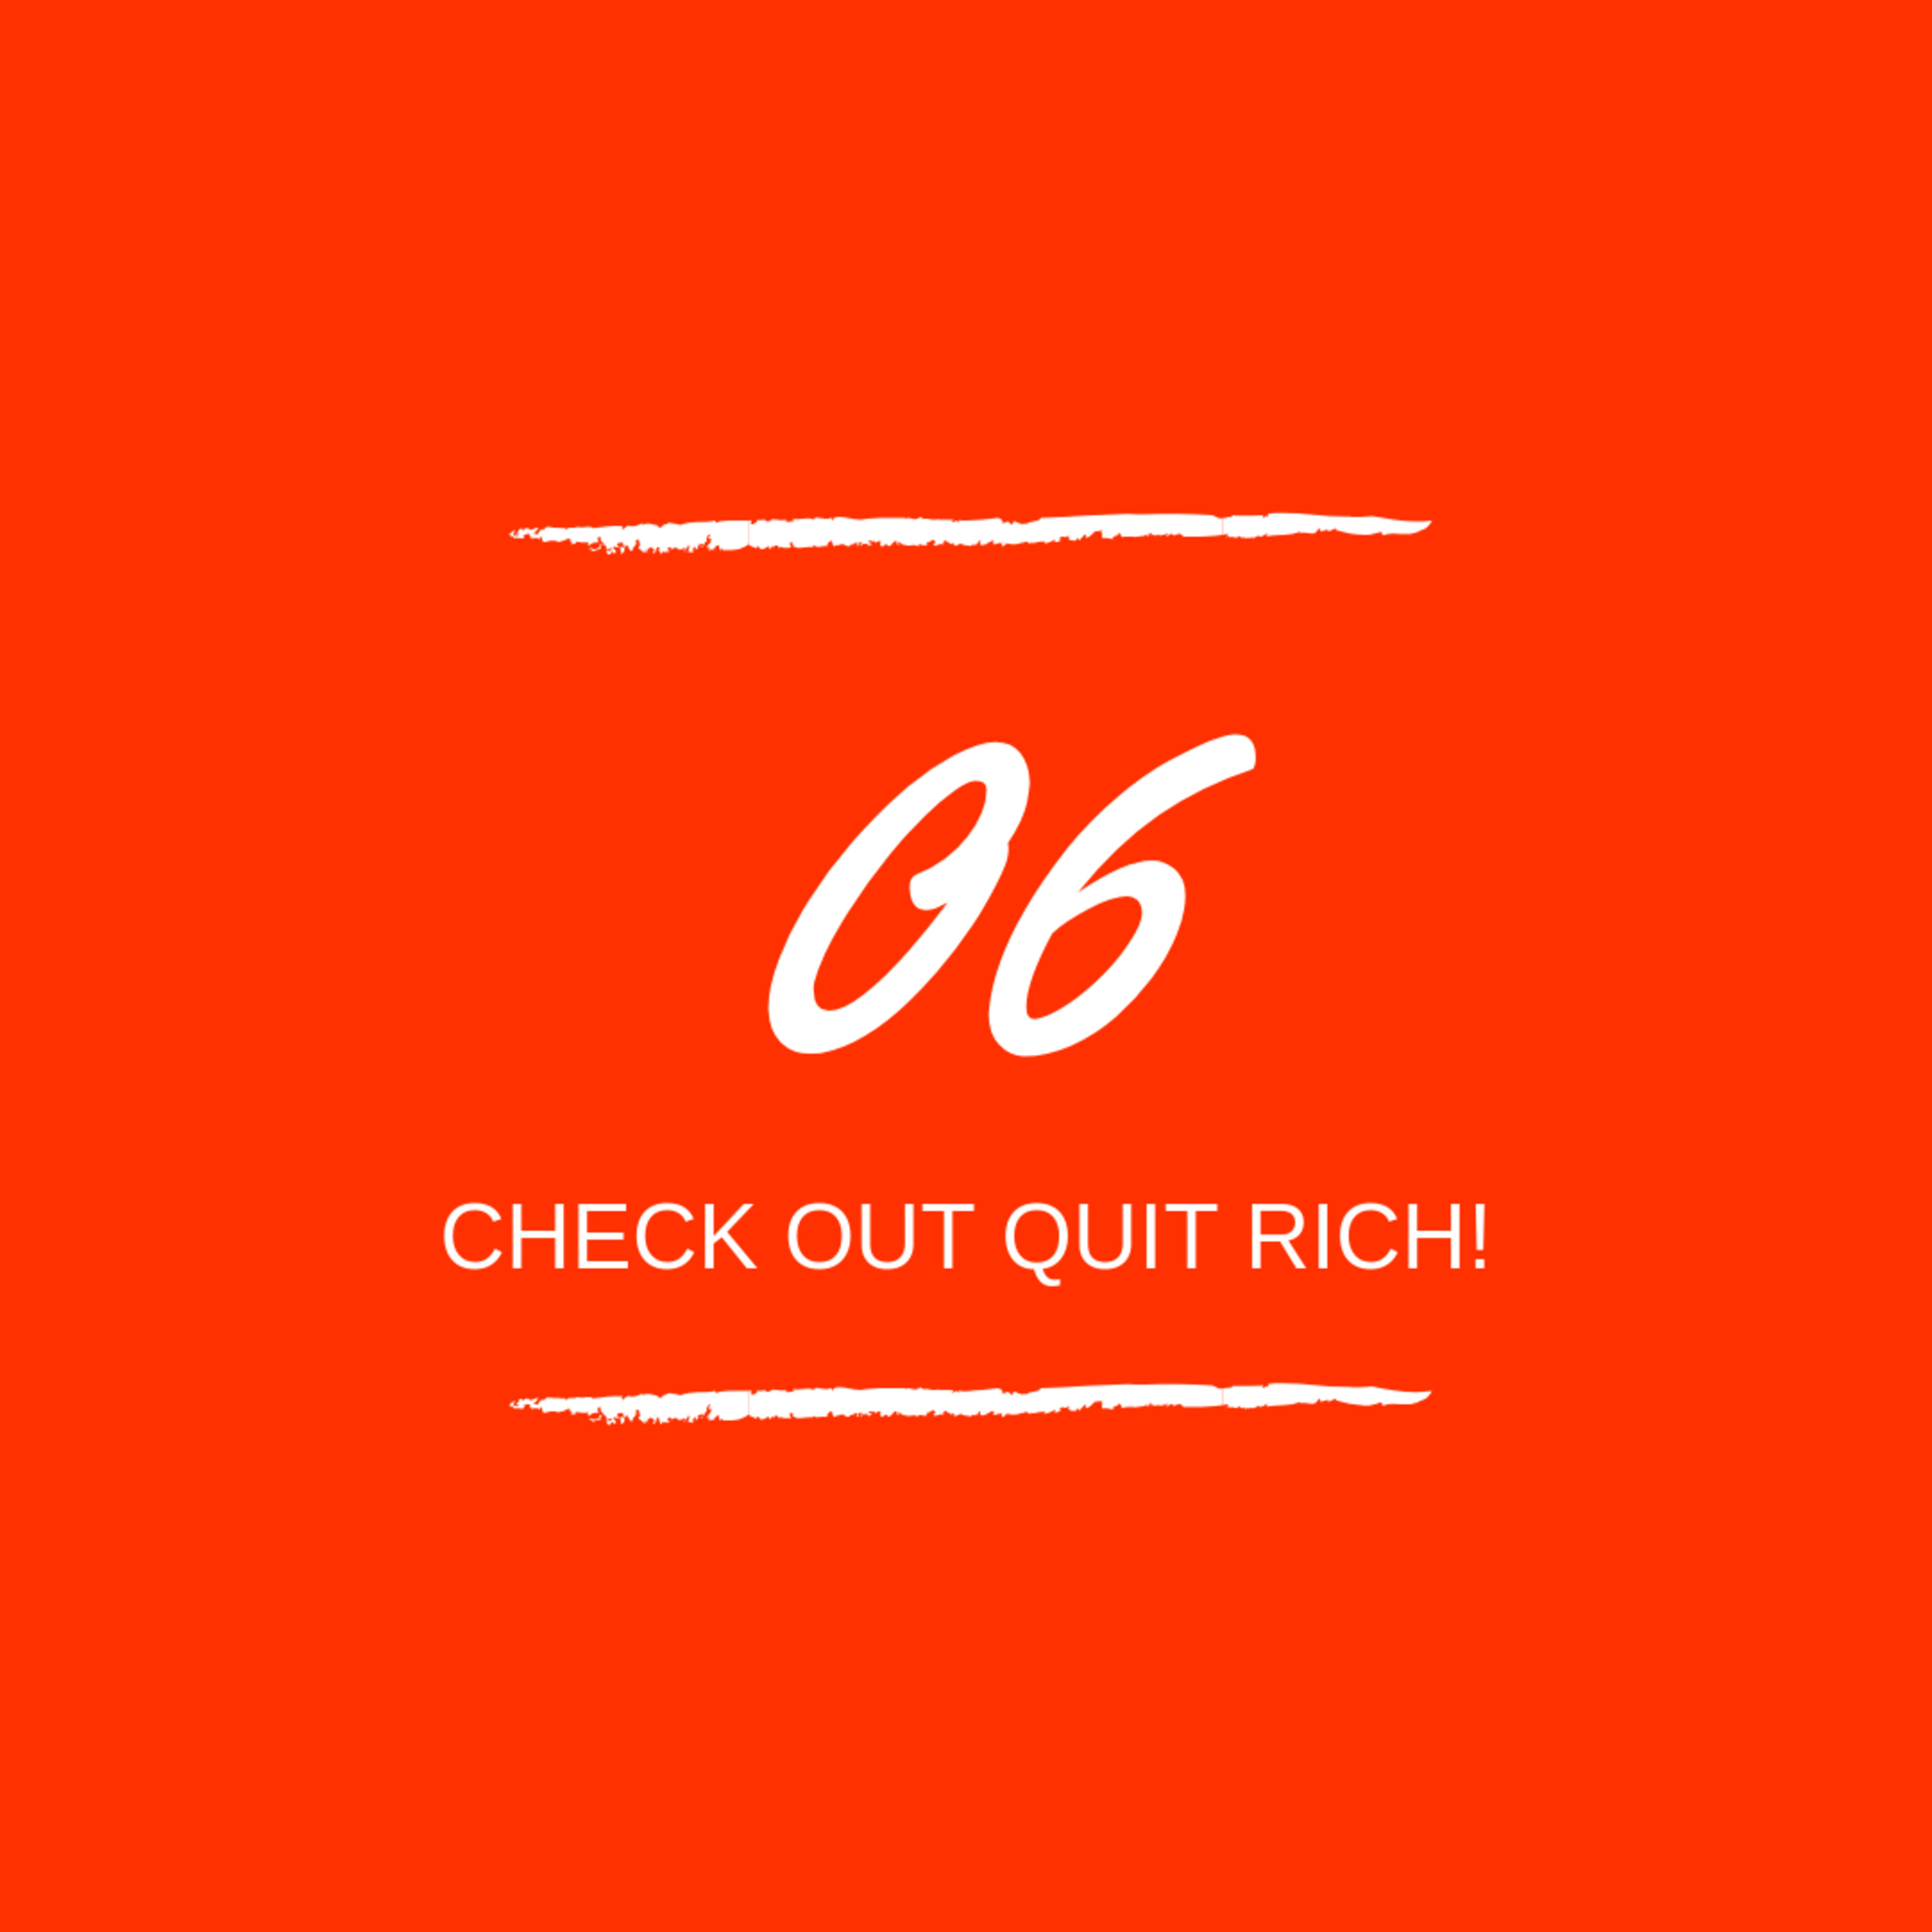 Day 06 : 💻 Check out Quit Rich!